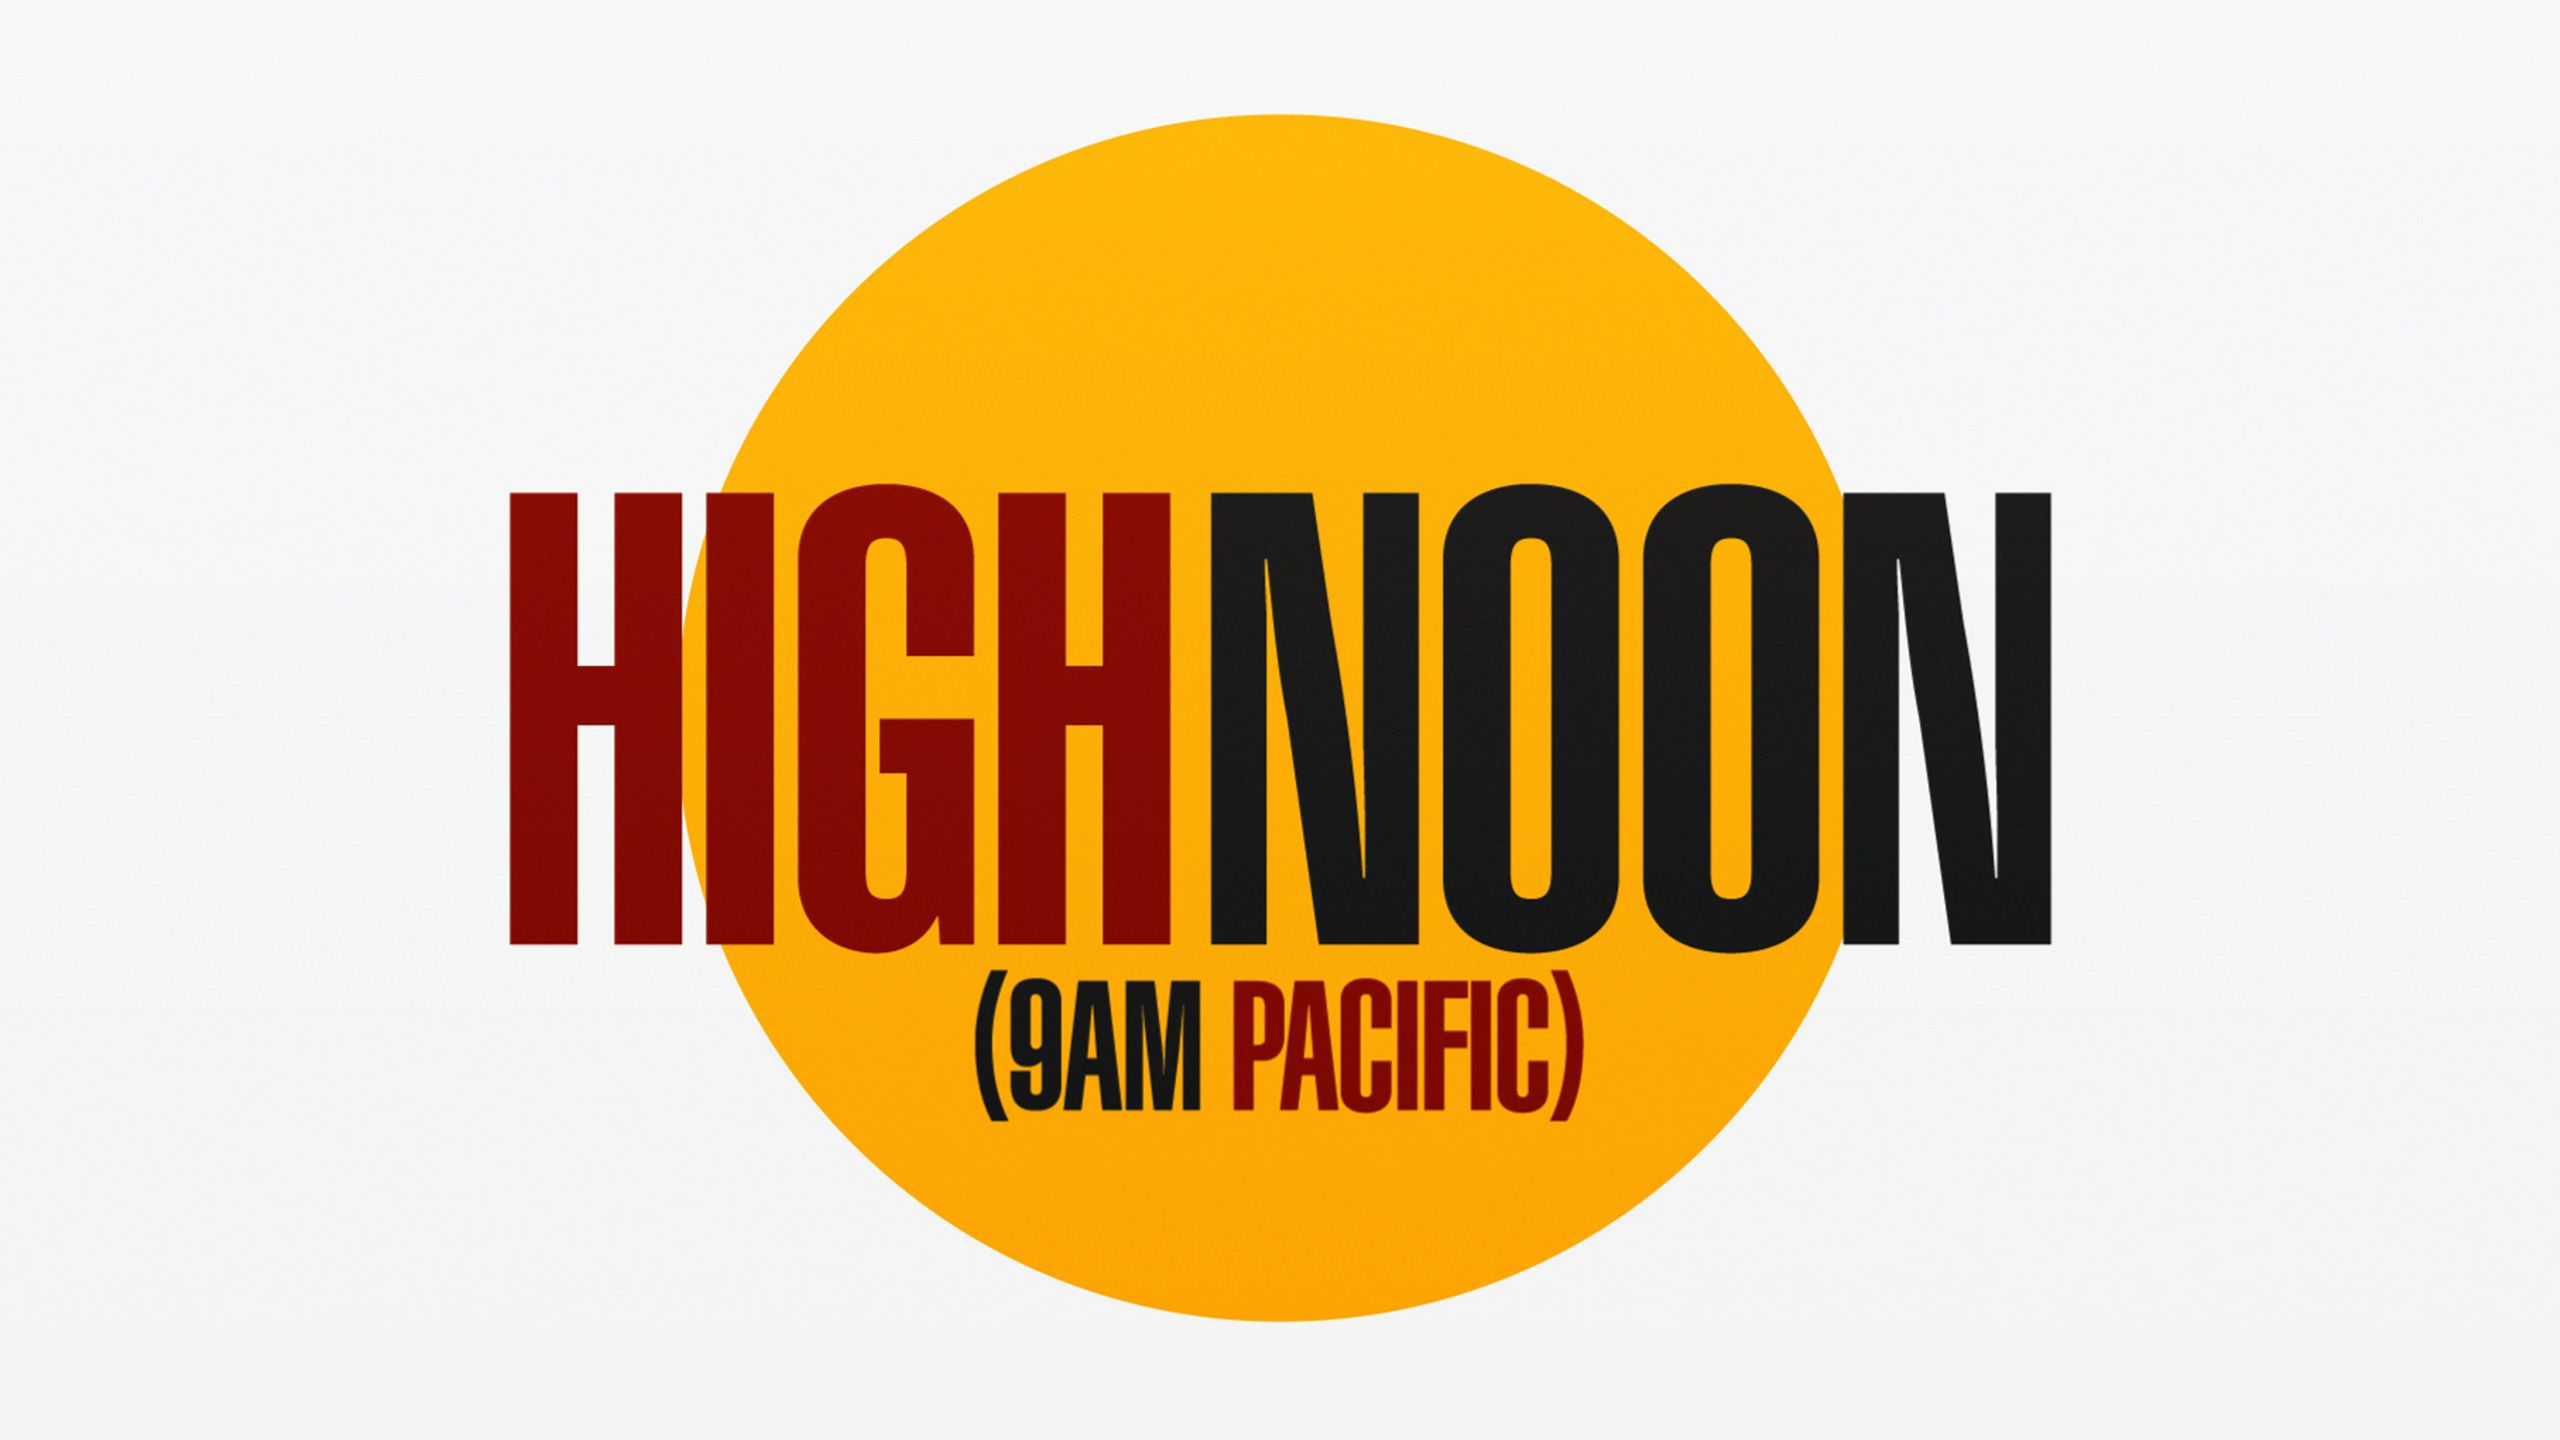 Thu, 7/19 - HIGH NOON (9am Pacific)